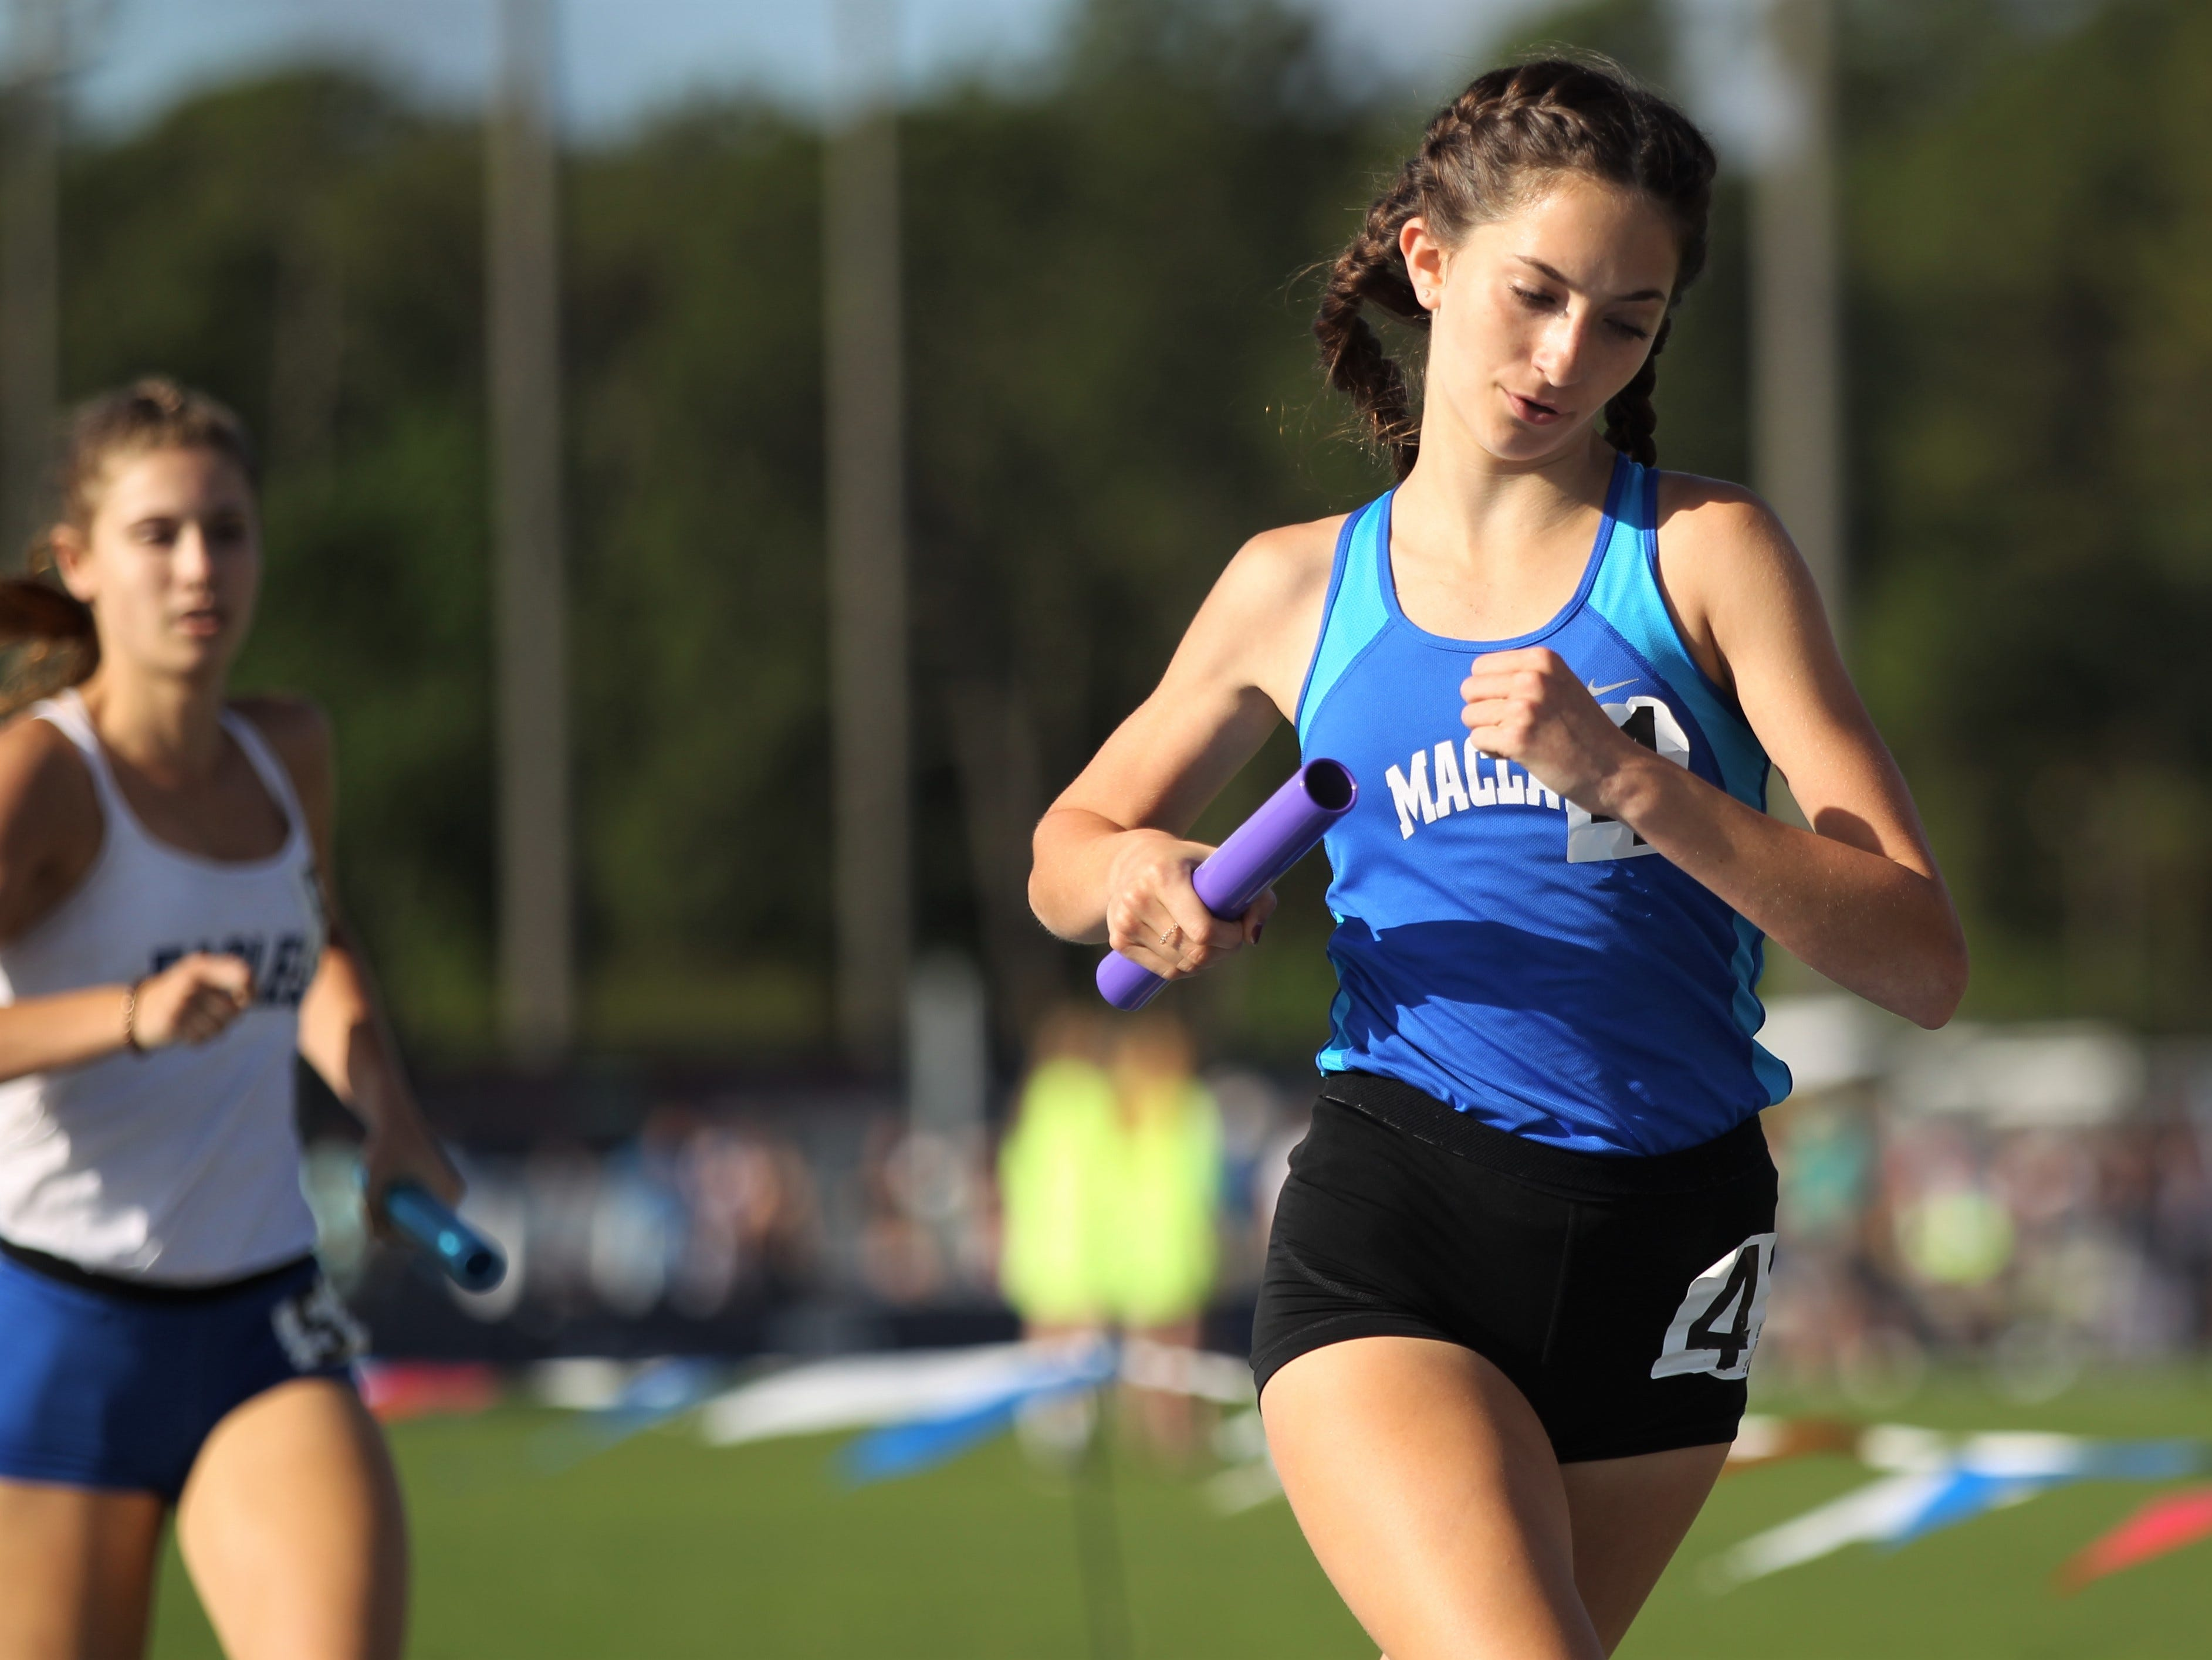 Maclay eighth-grader Ella Porcher runs a 4x800 leg during the FHSAA Track and Field State Championships at UNF's Hodges Stadium in Jacksonville on May 4, 2019.